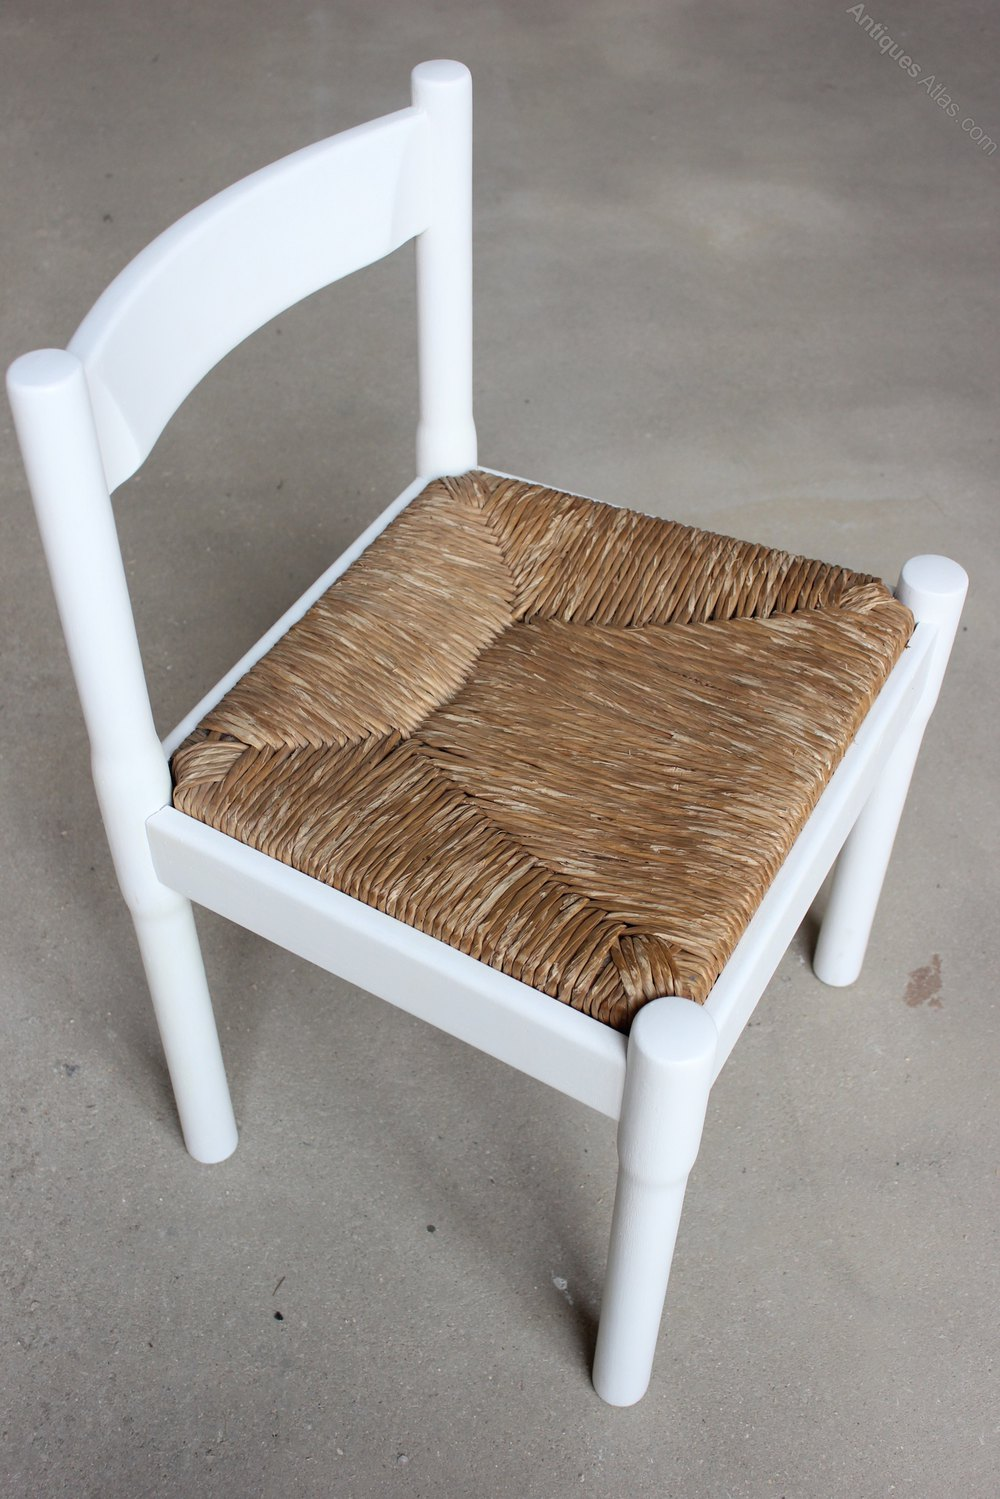 ... Dining Chairs magistretti conran ... : conran dining chairs - Cheerinfomania.Com